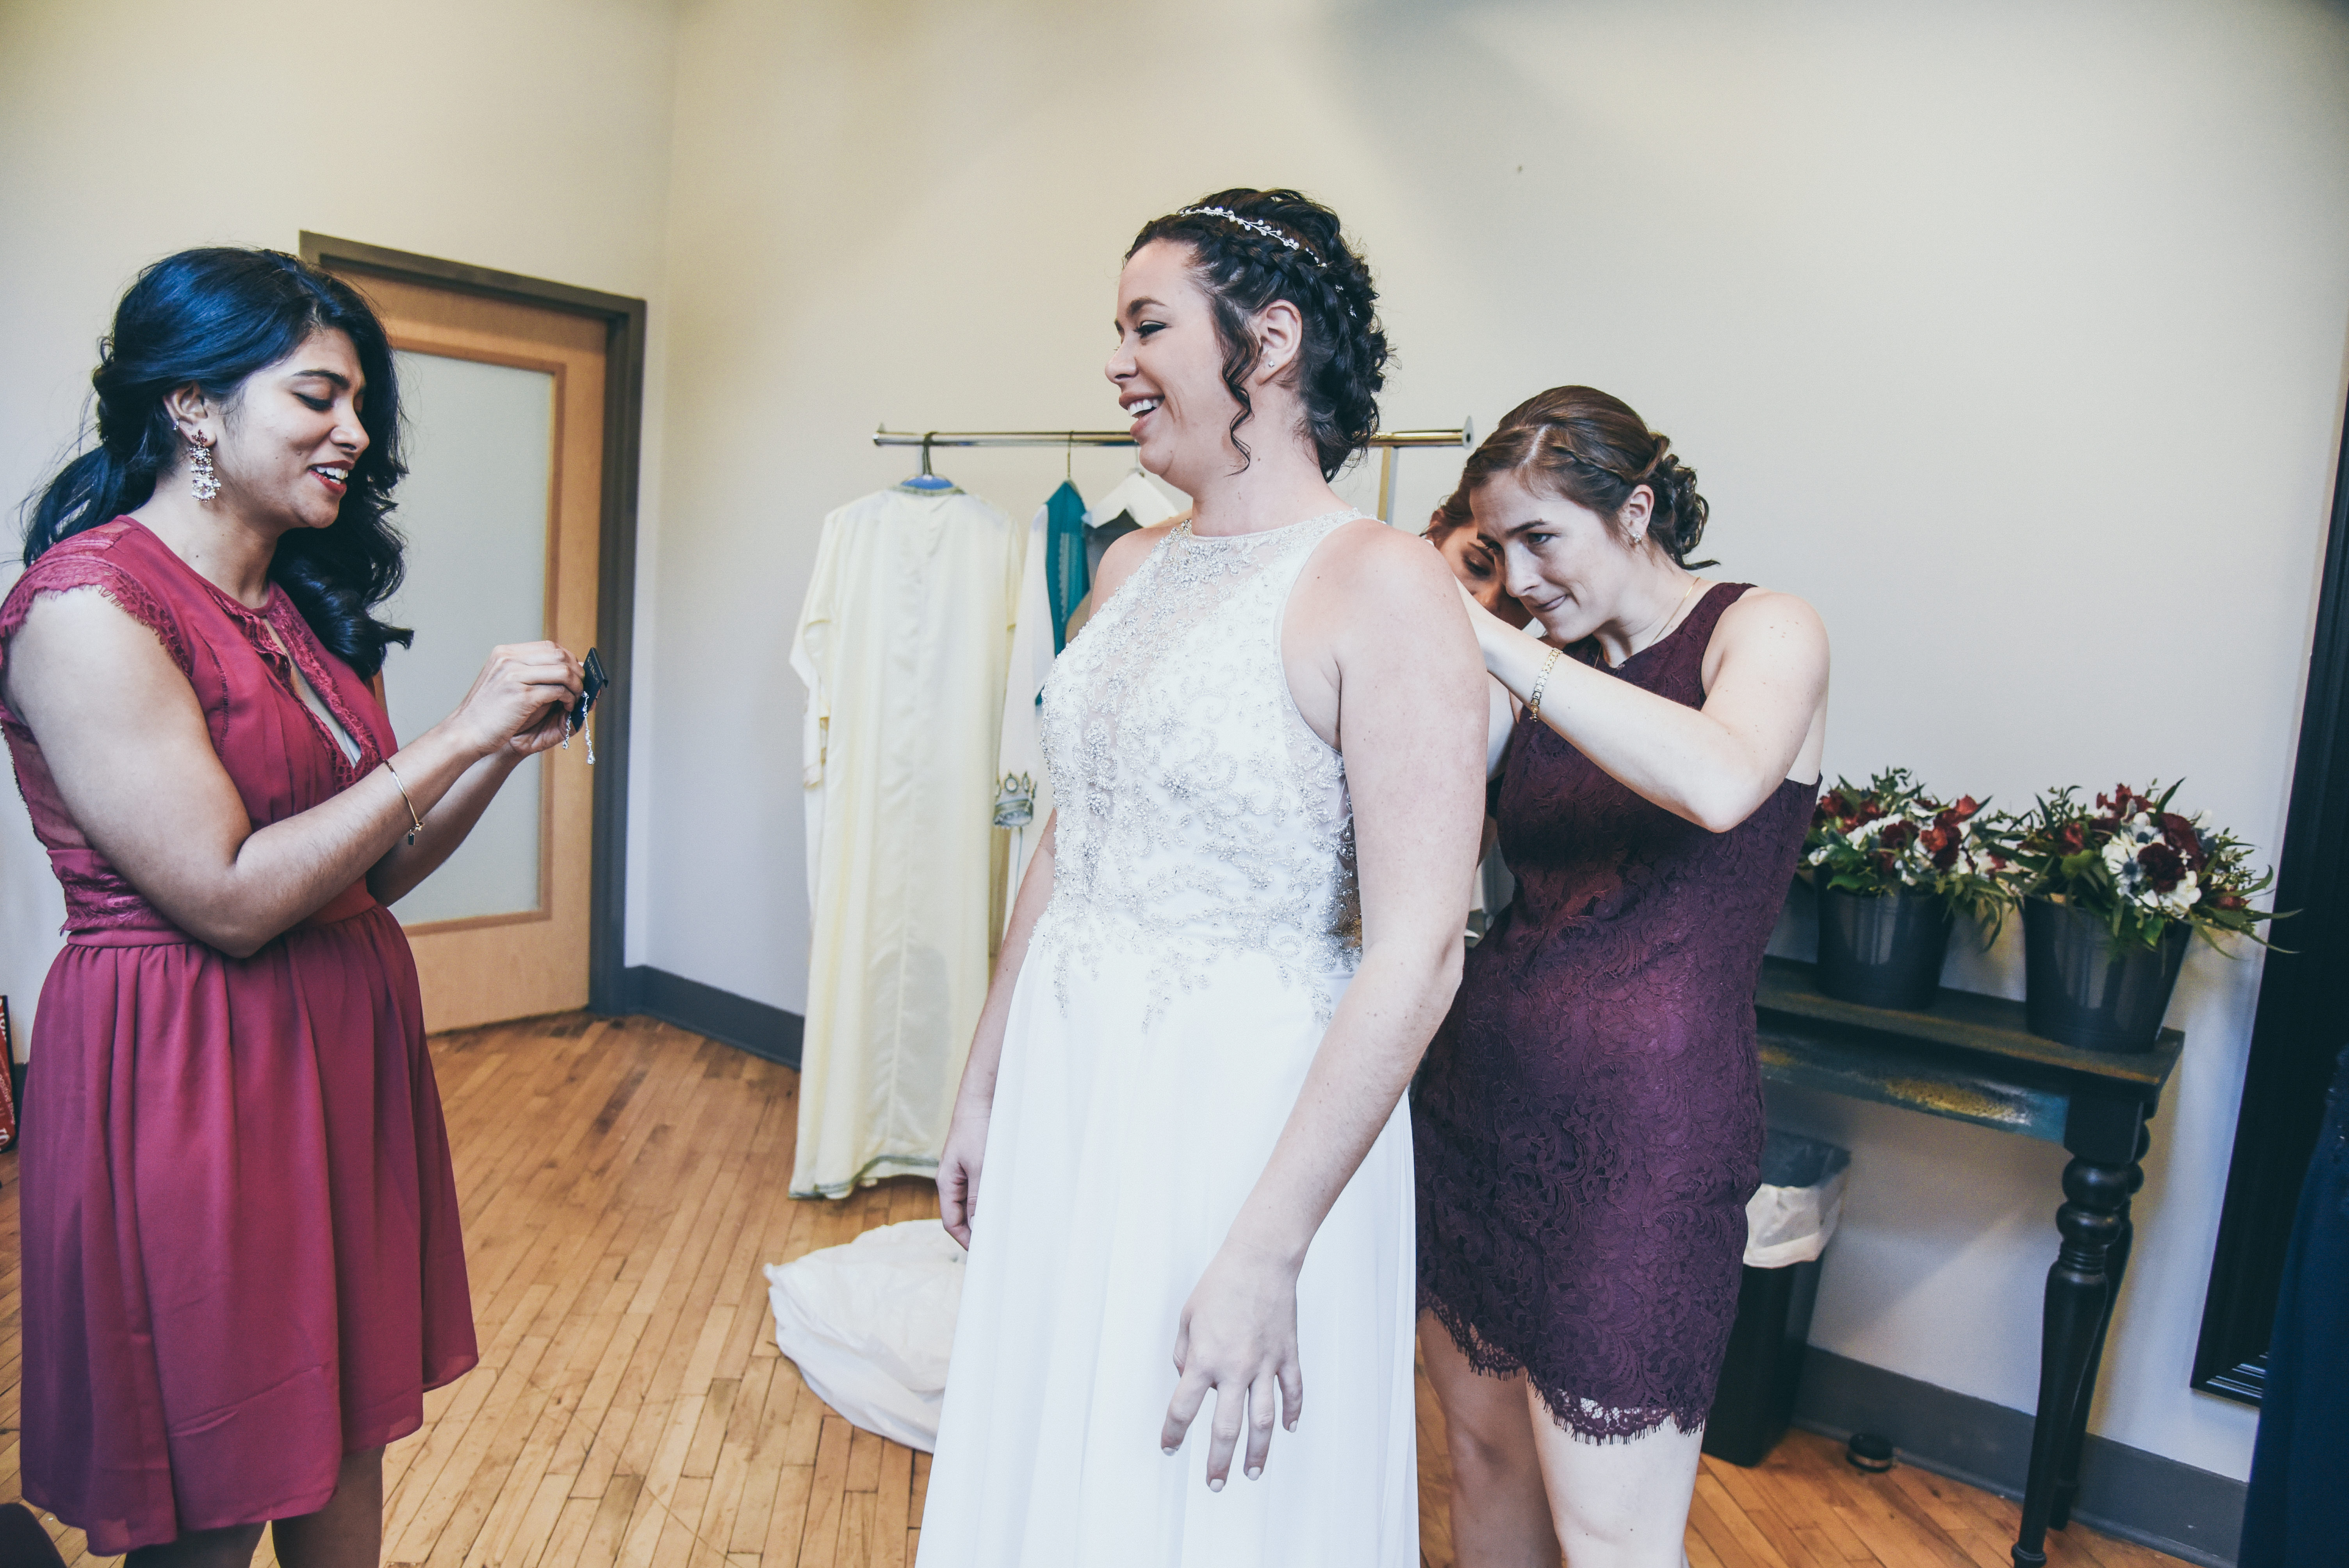 image of bridesmaid helping to fasten brides wedding gown